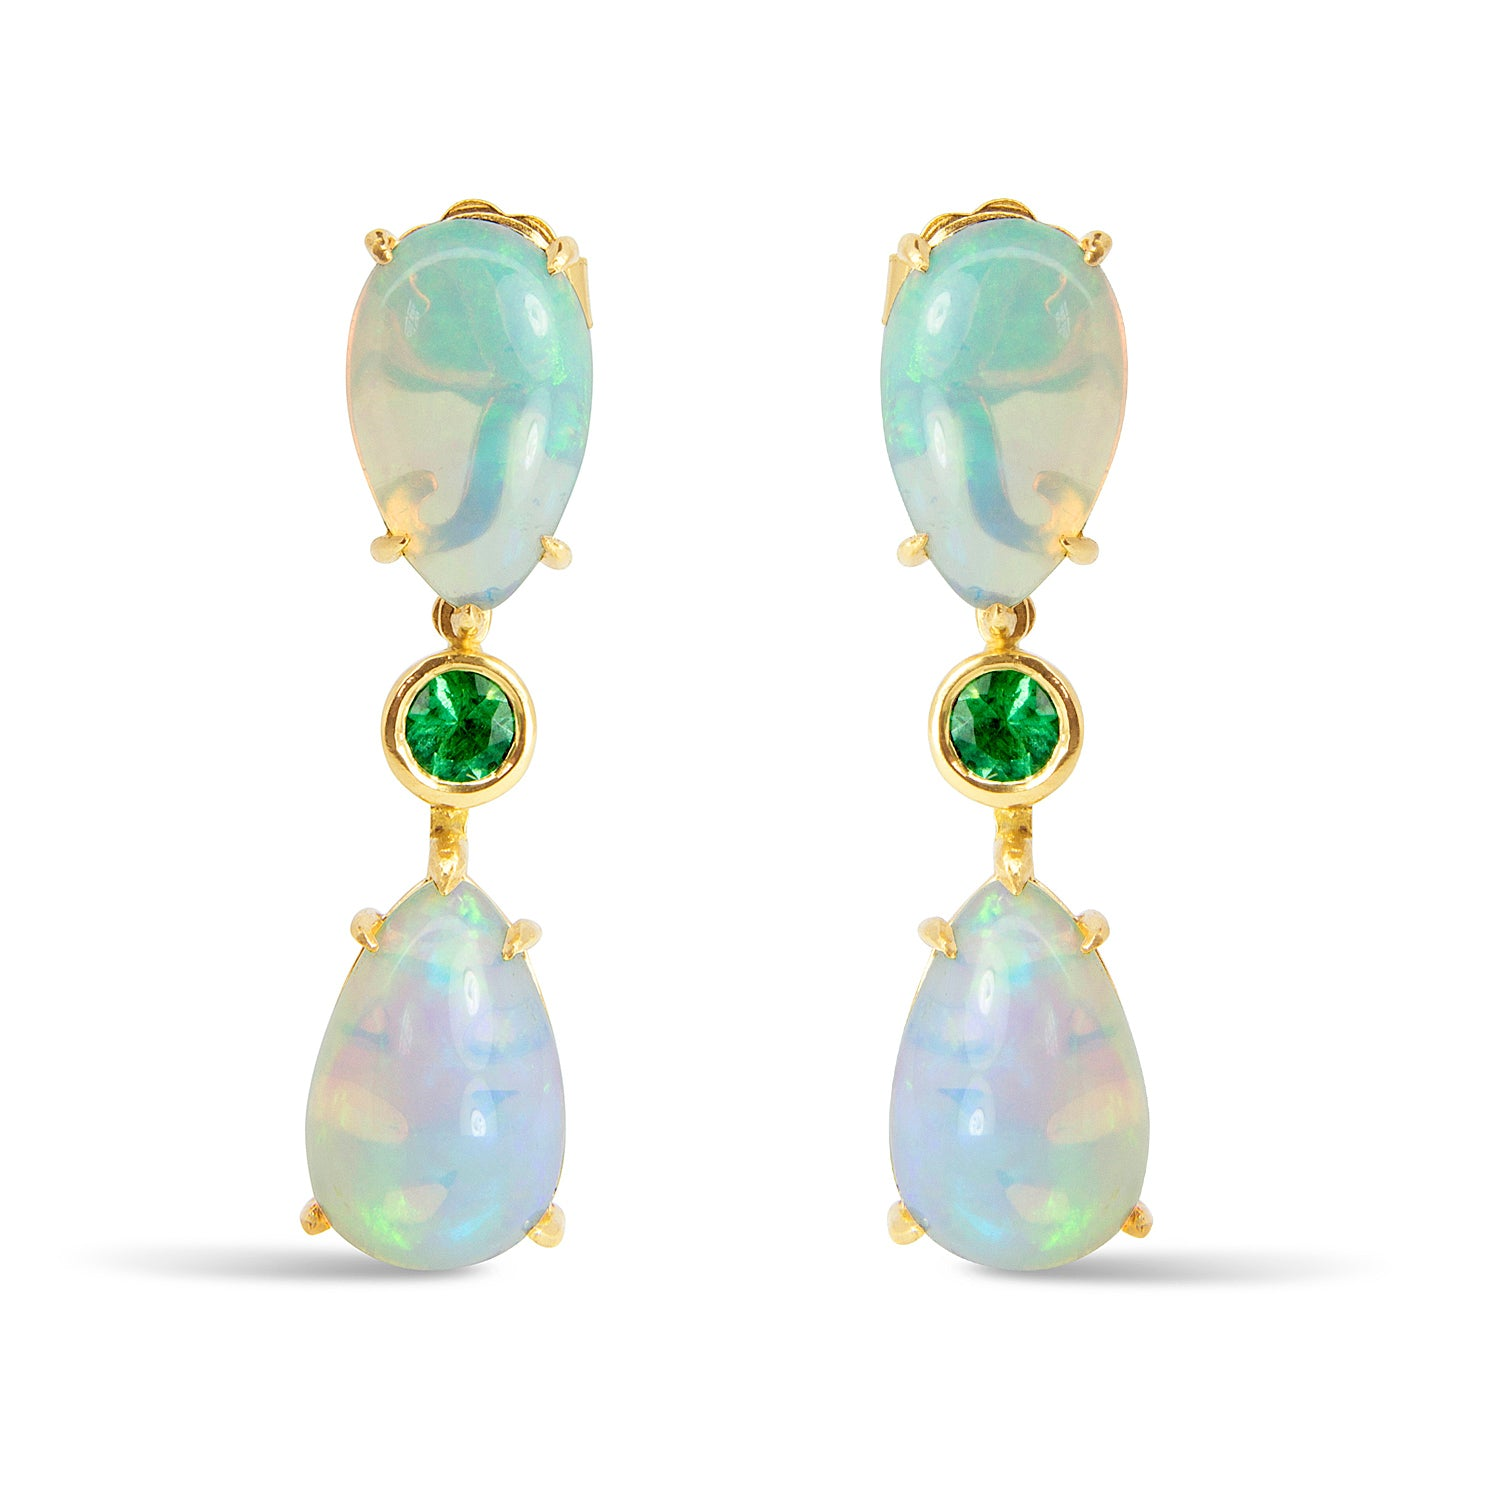 Bespoke Estelle Opal Drop Earrings